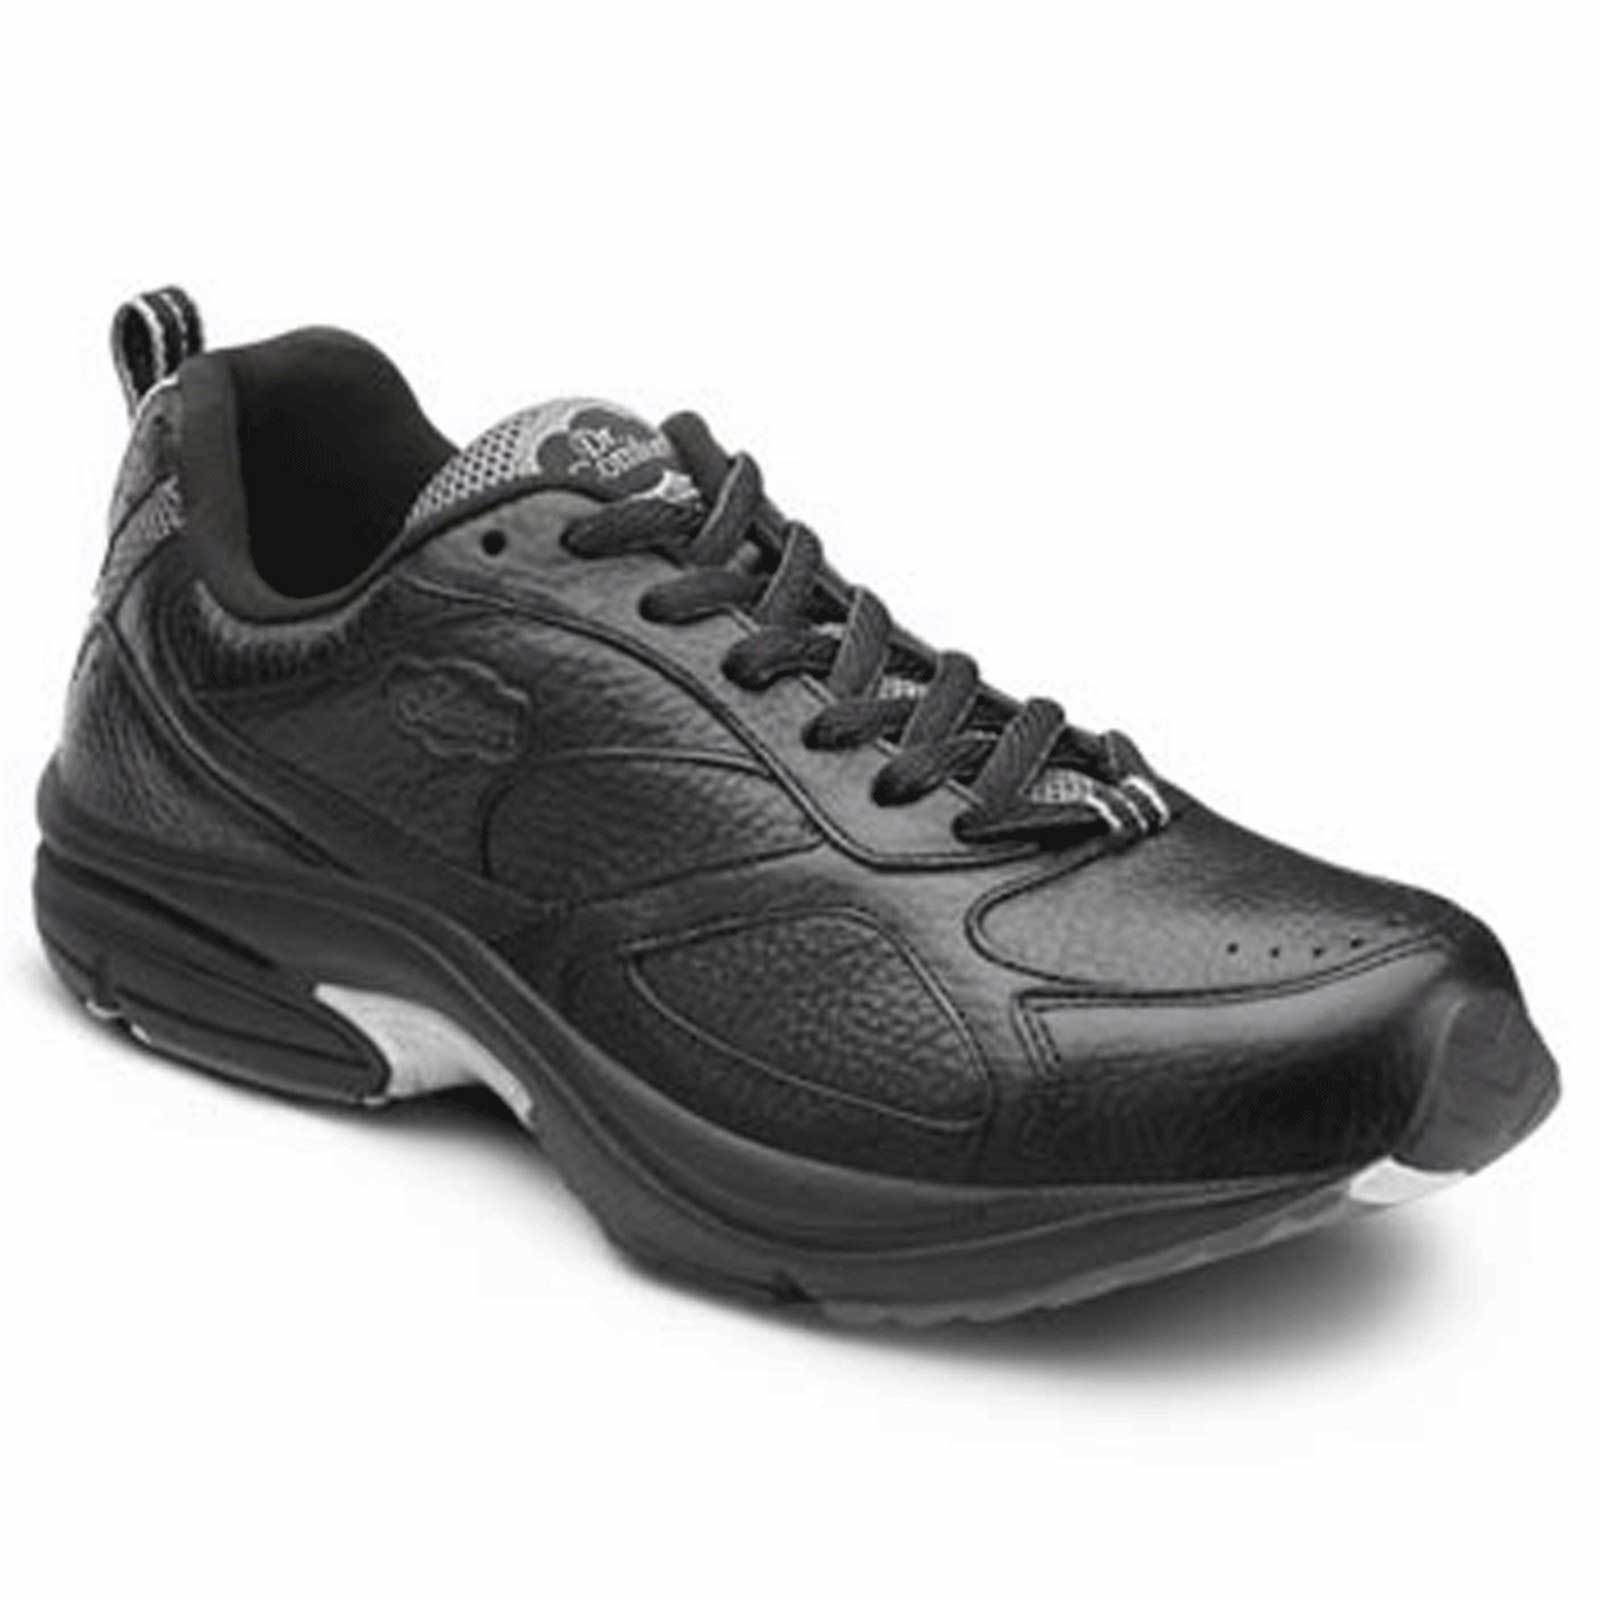 Dr. Comfort Shoes Winner Plus (formerly Champion Plus) - Men's Comfort Therapeutic Diabetic Shoe with Gel Plus Inserts - Athletic - Medium (B) - Extra Wide (4E) - Extra Depth for Orthotics